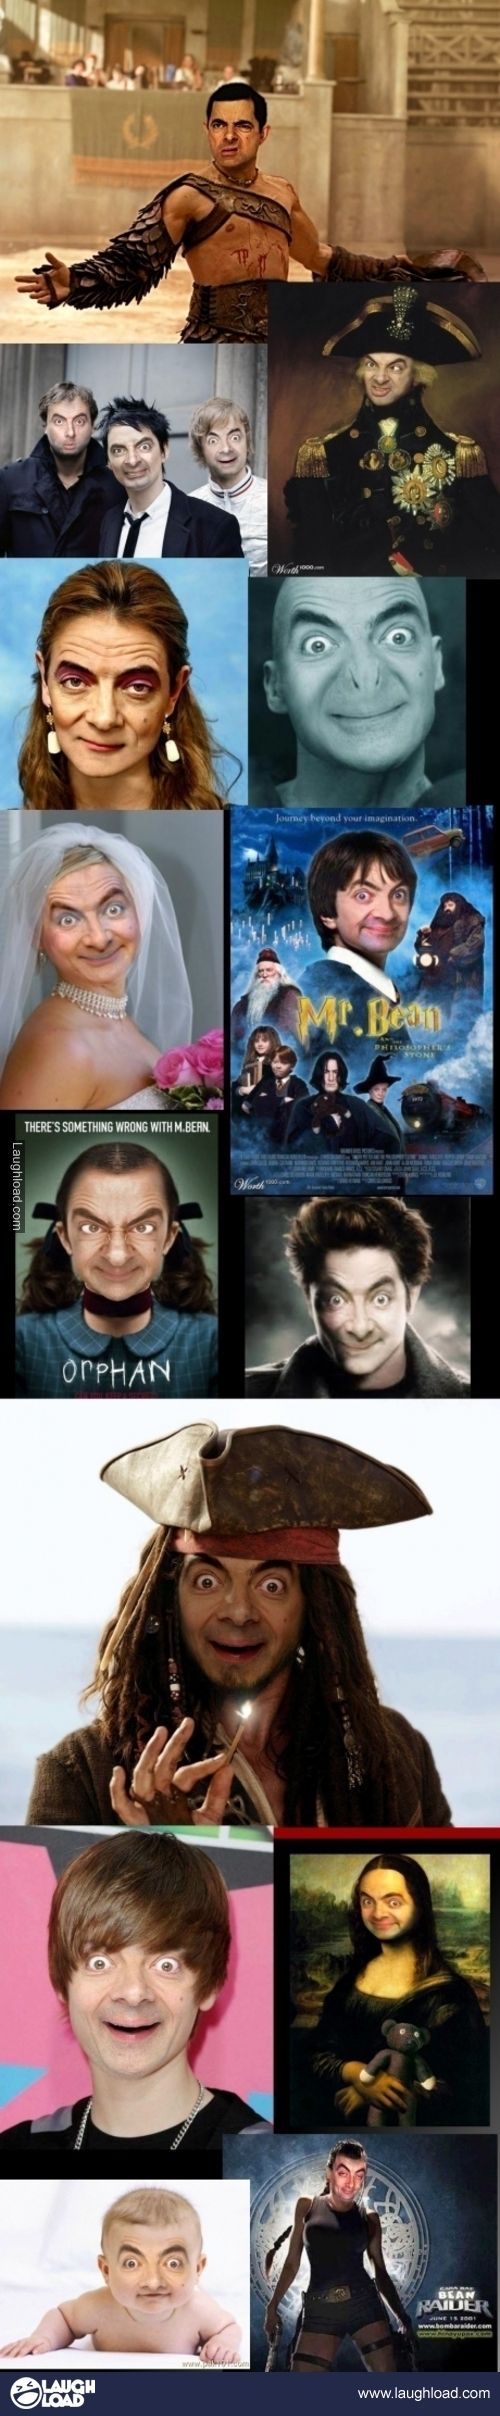 Just Mr Bean... I <3 Mr. Bean <3... I repinned something like this before lol (Favorite Meme)